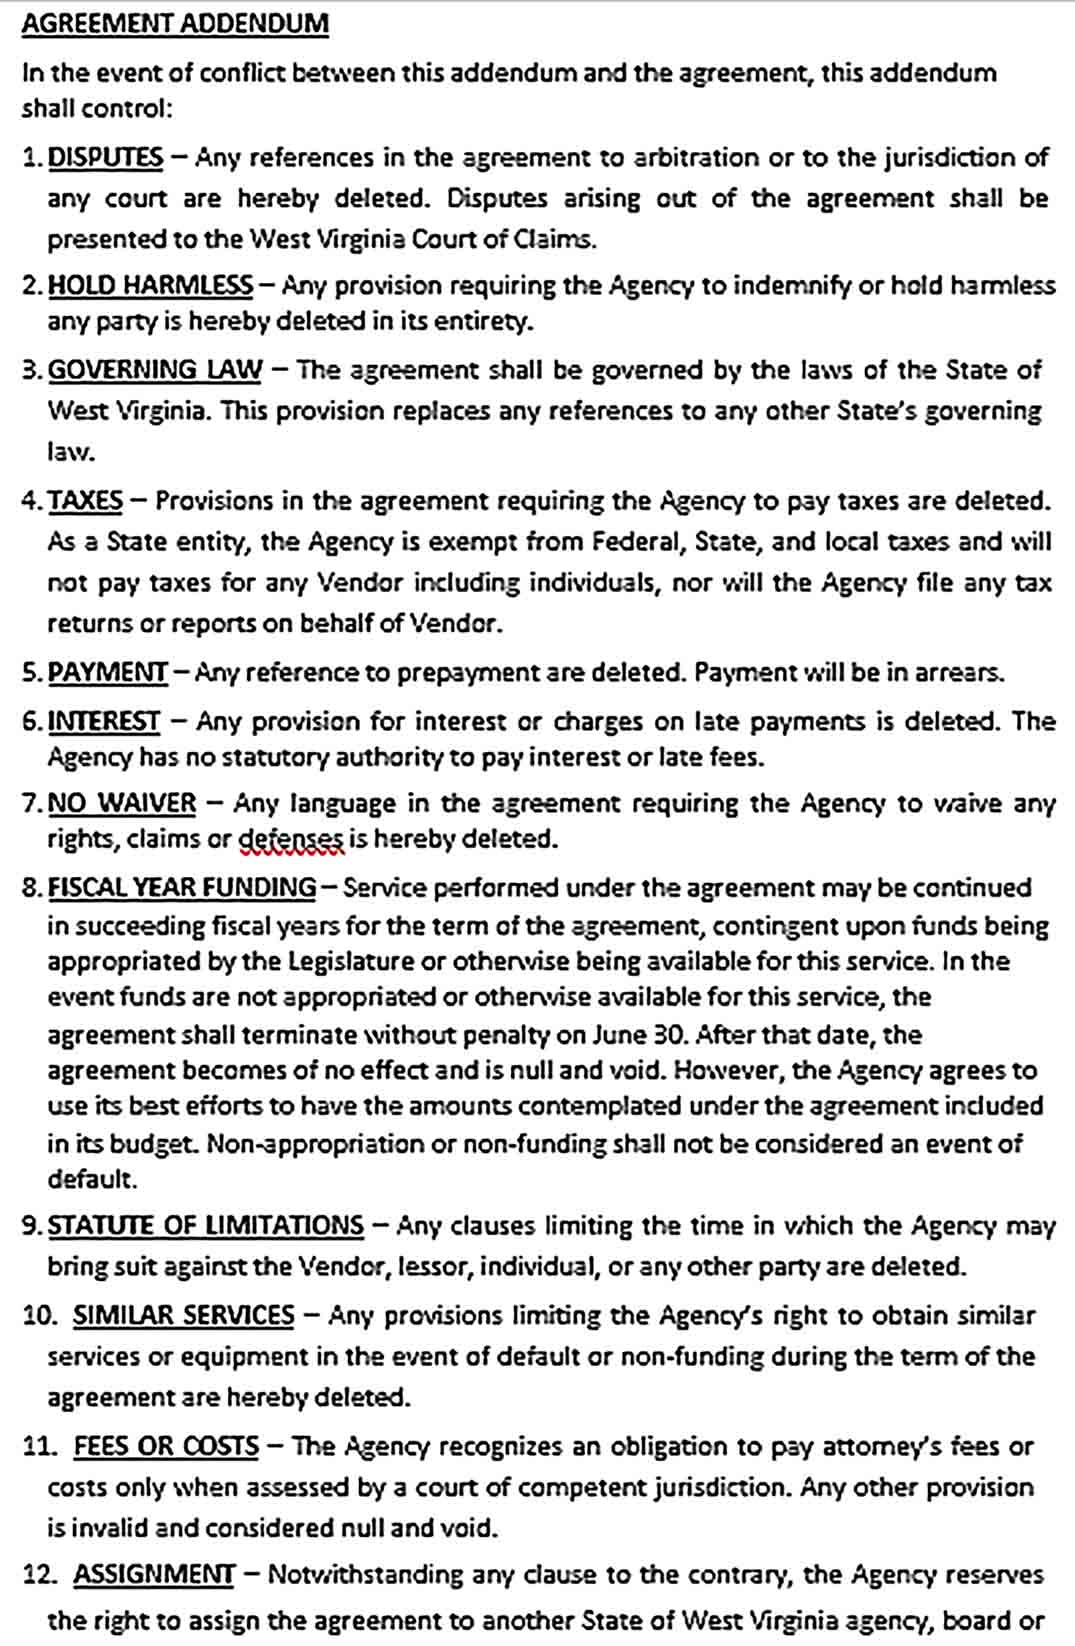 Sample Addendum Agreement